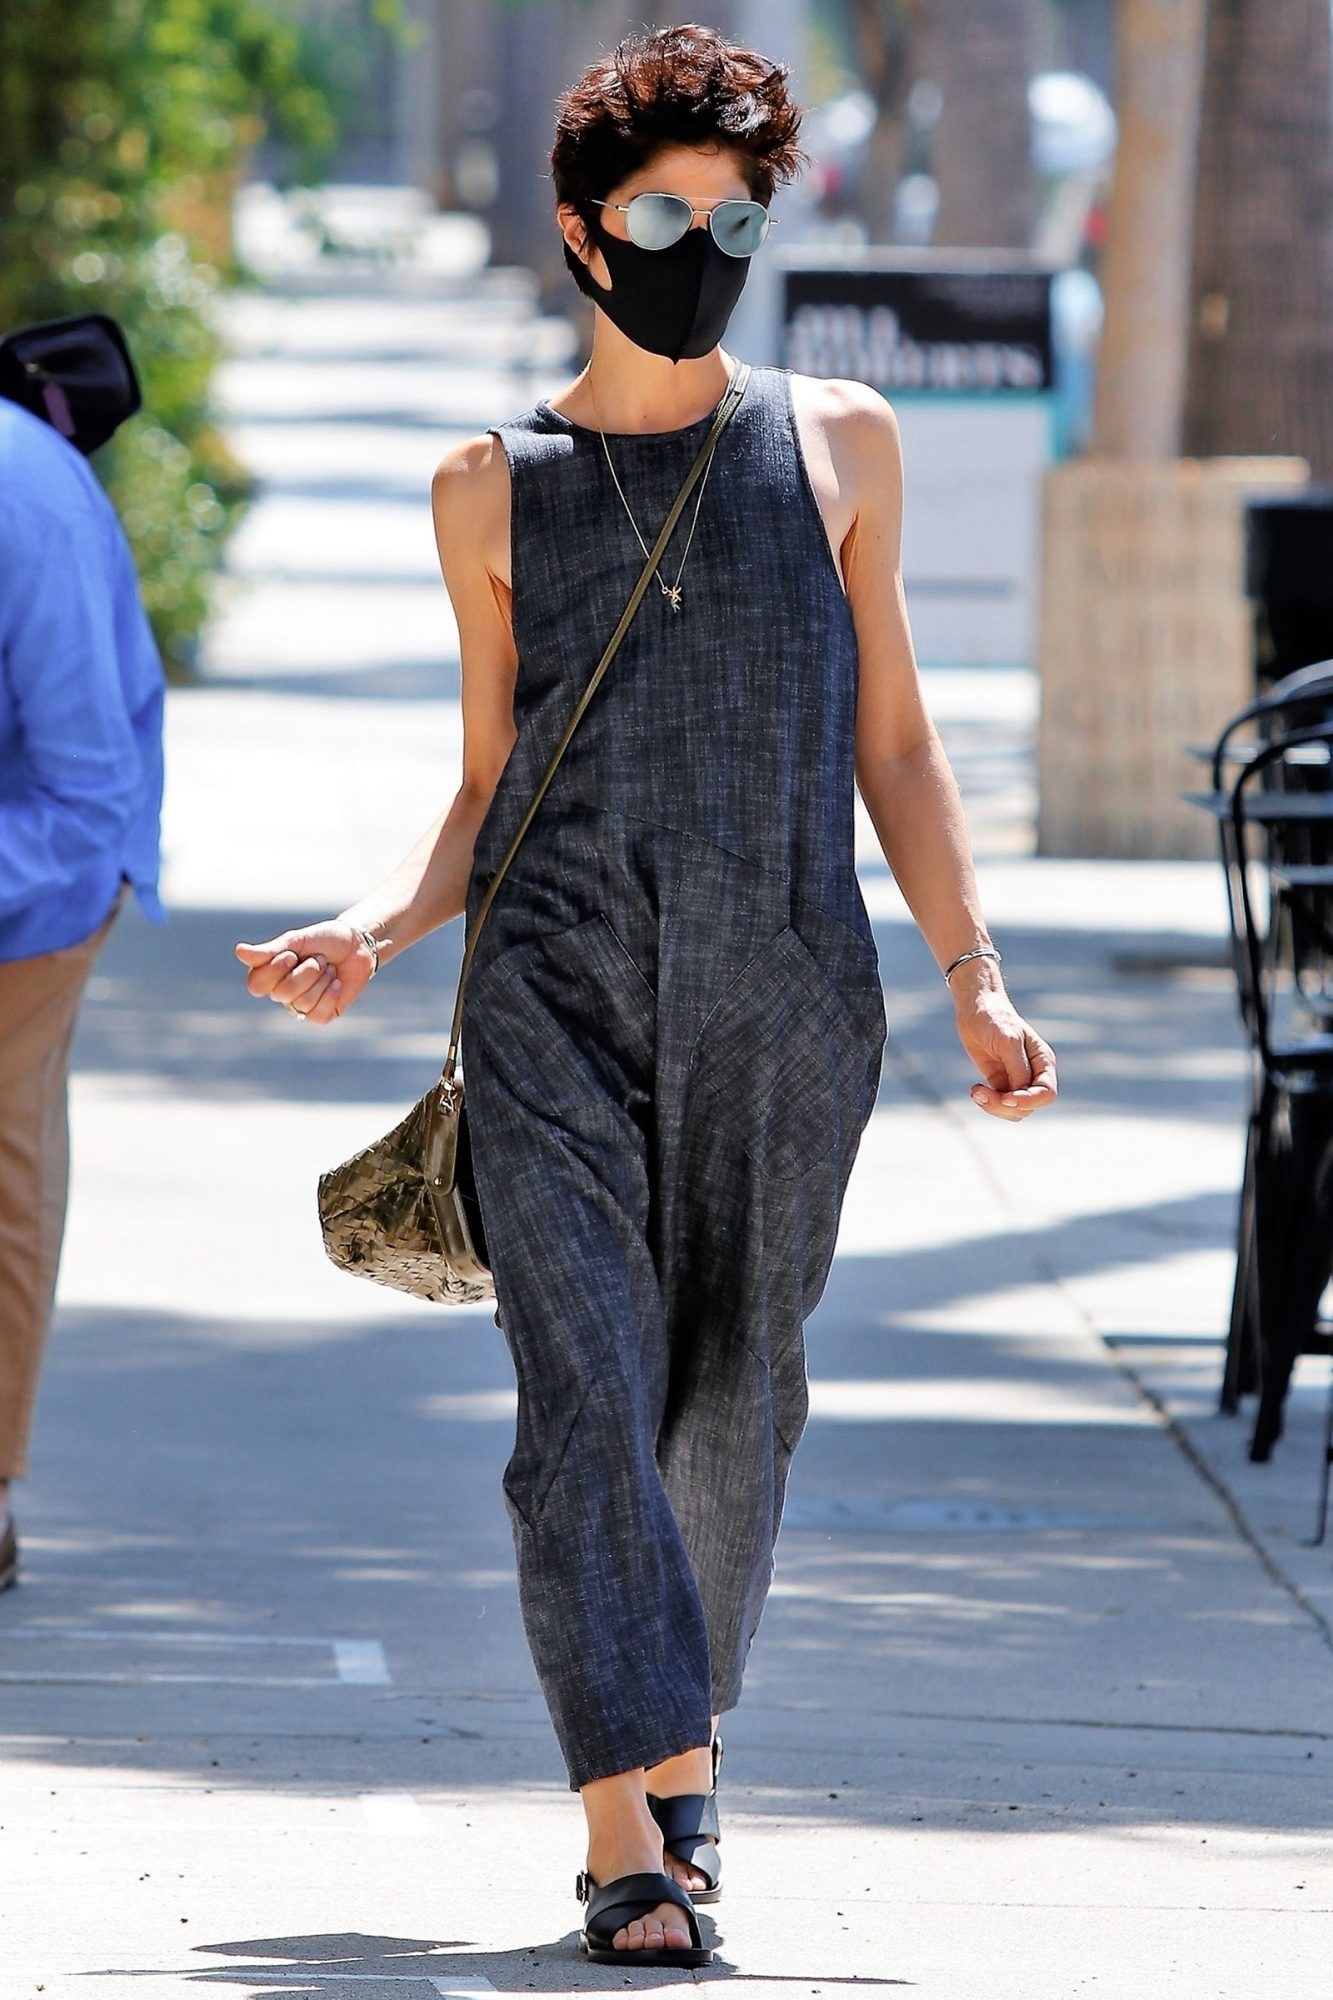 Selma Blair heads to her favorite coffee place